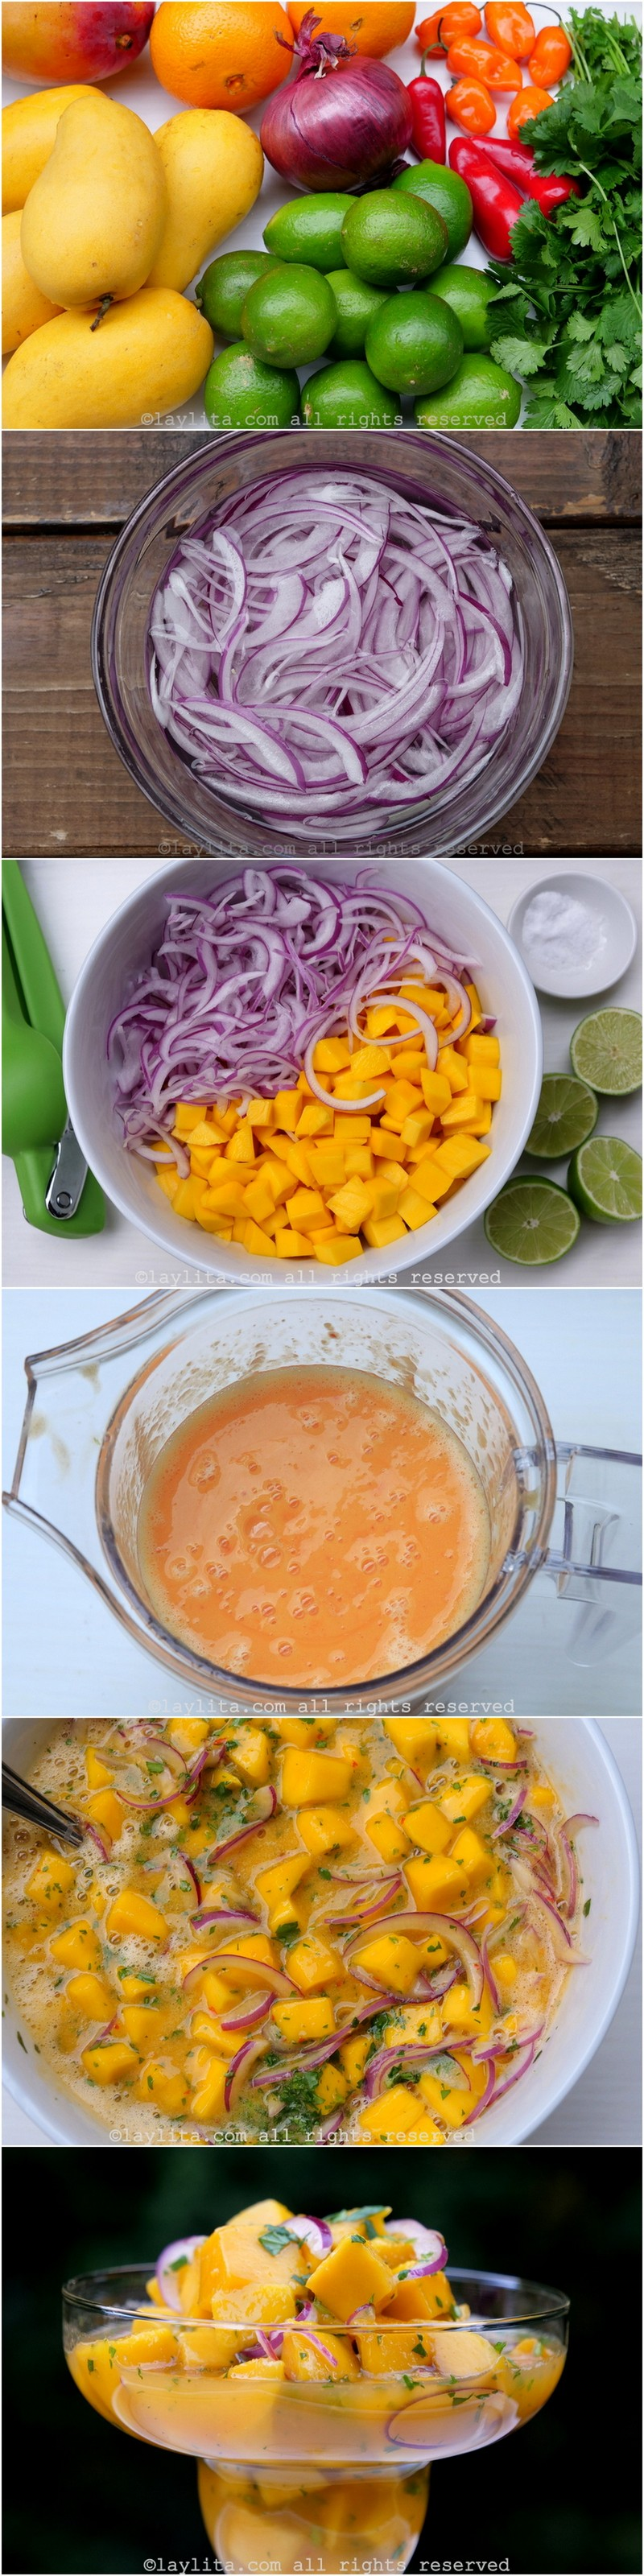 Mango ceviche preparation